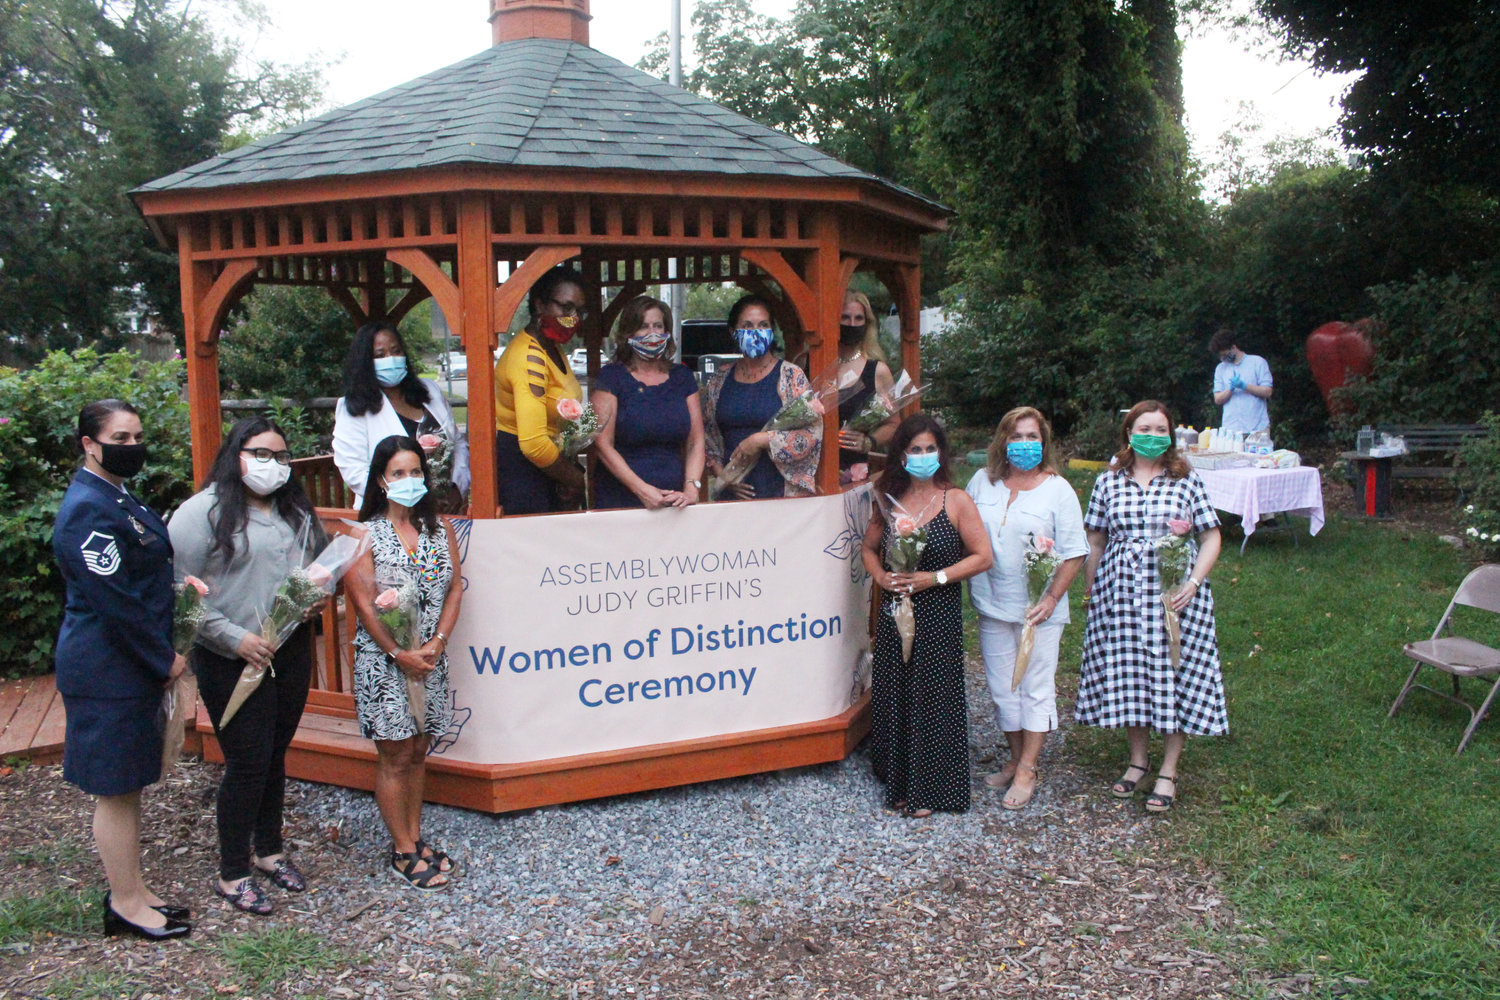 Campbell-Ham was one of 10 women recognized by Griffin, center, at the ceremony, held in the Baldwin Community Garden.